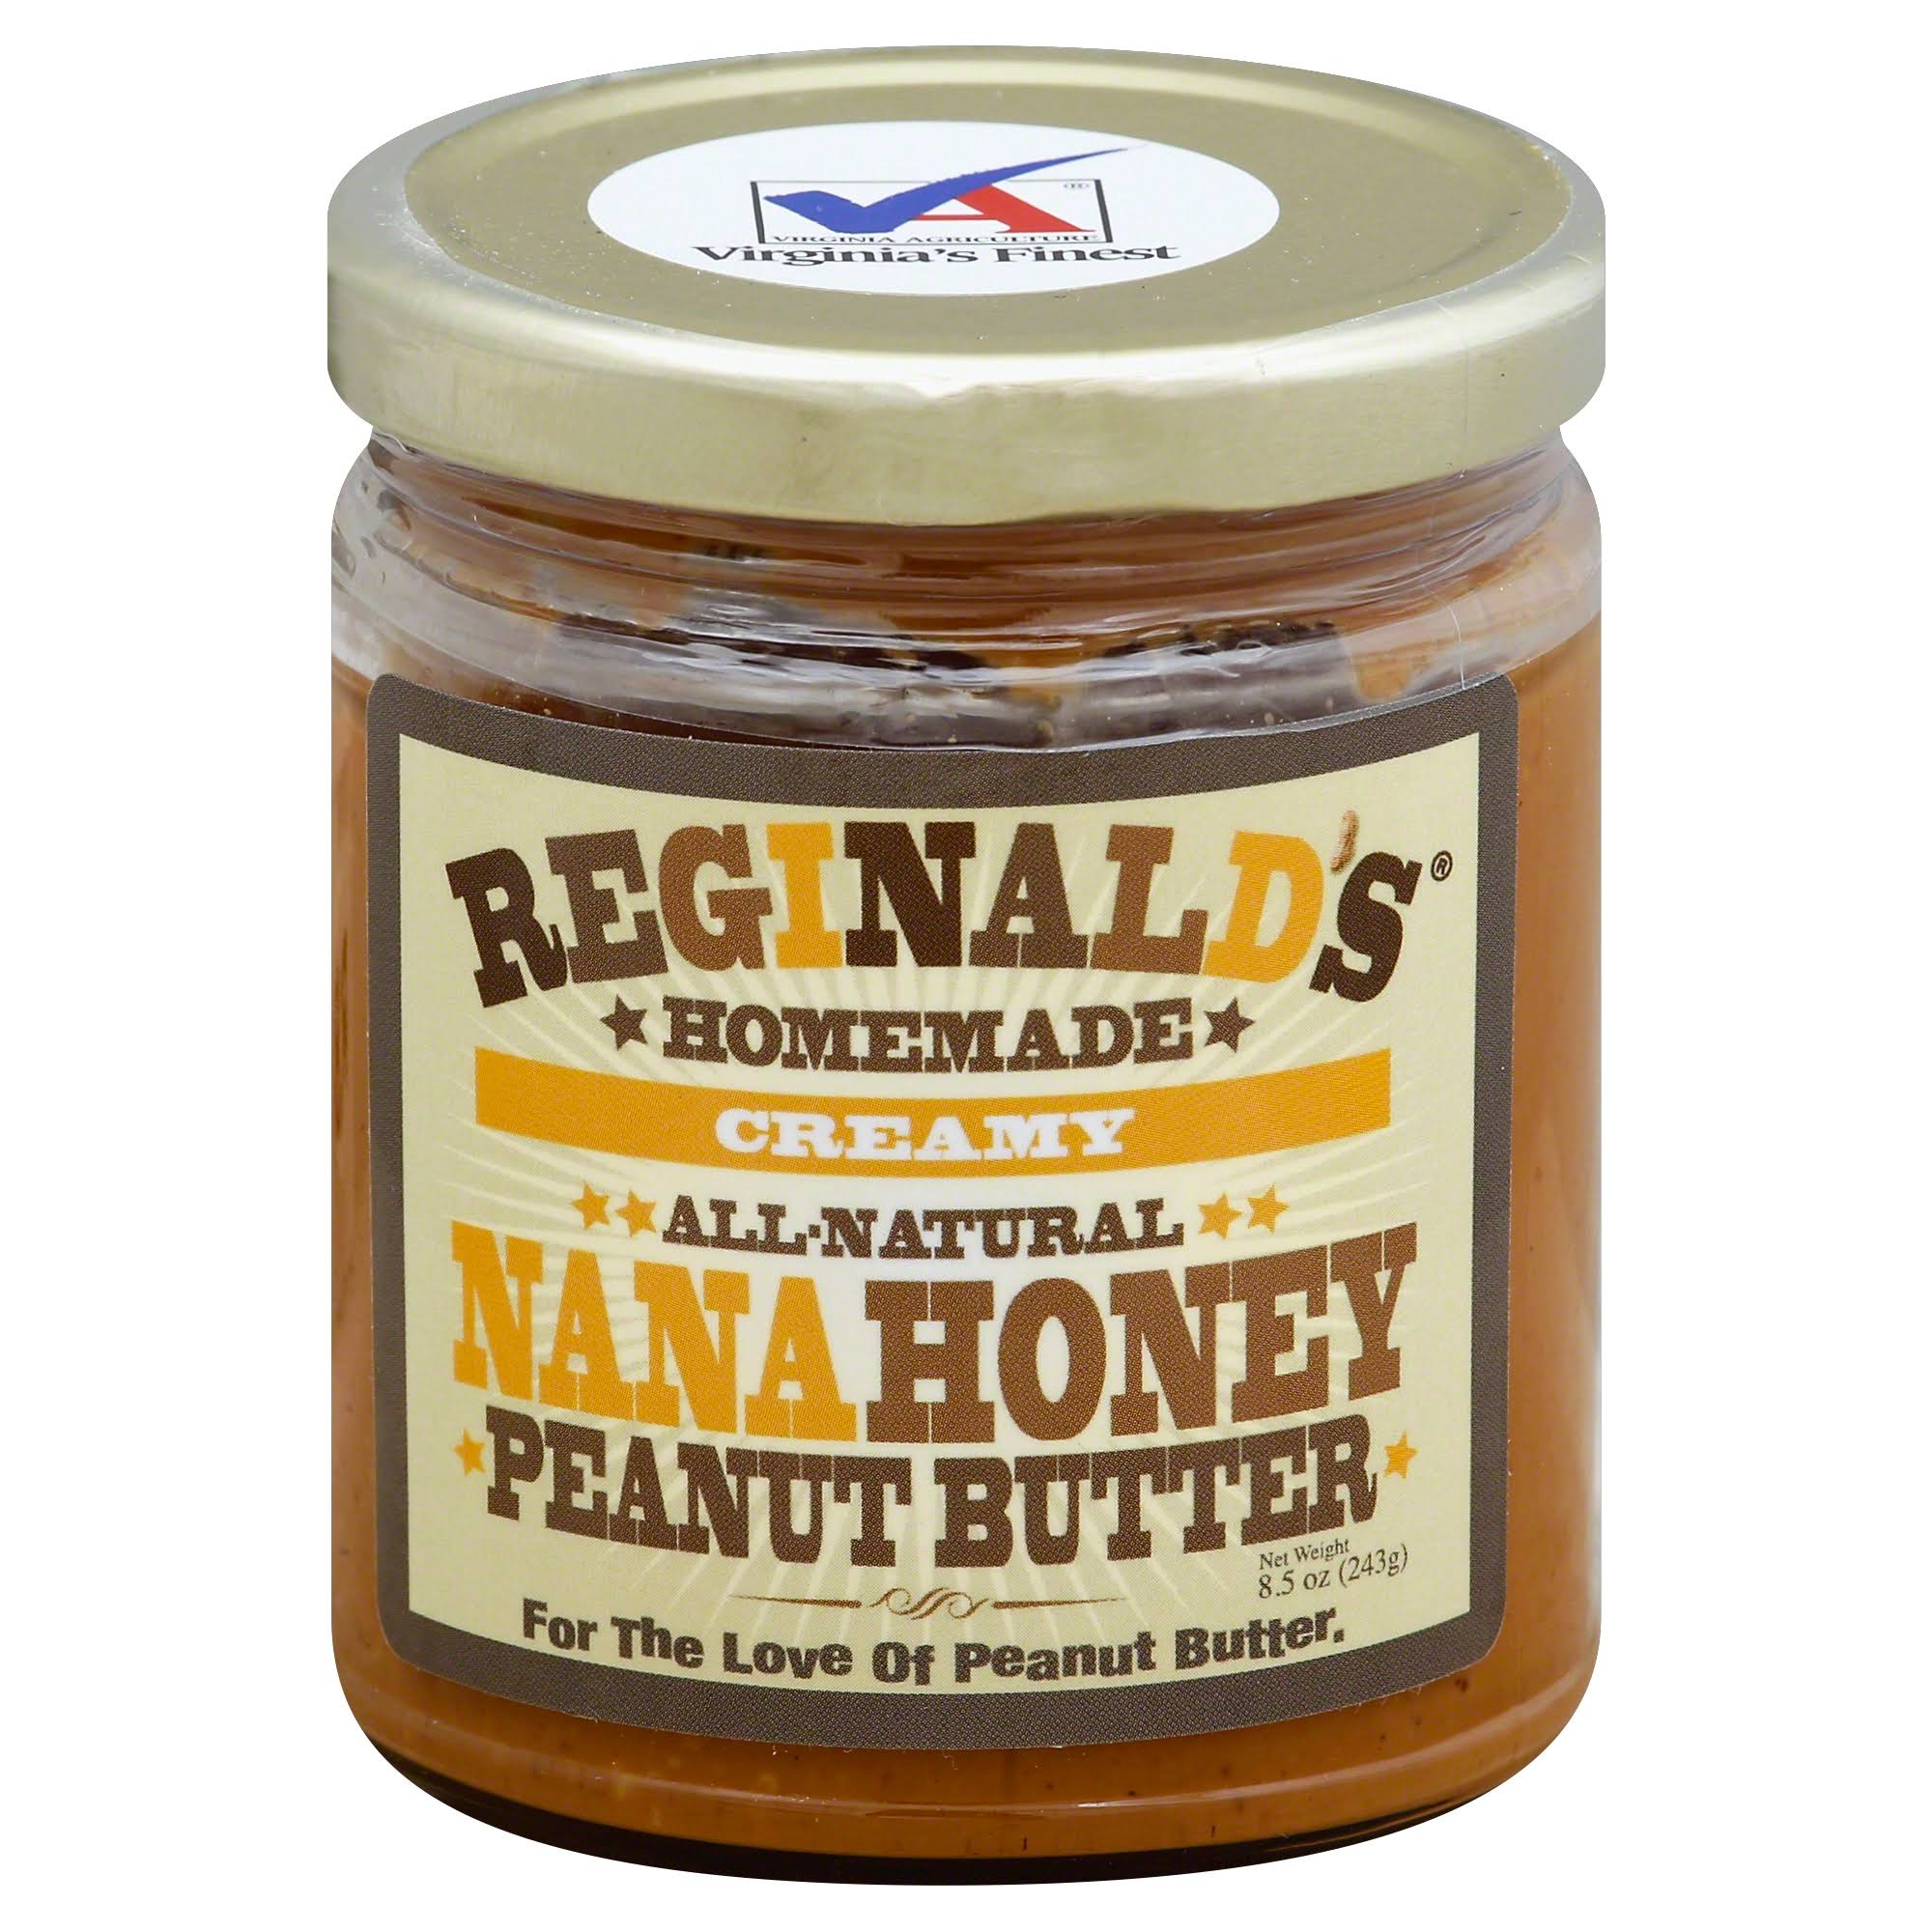 Reginalds Homemade Peanut Butter, Creamy, Nana Honey - 8.5 oz